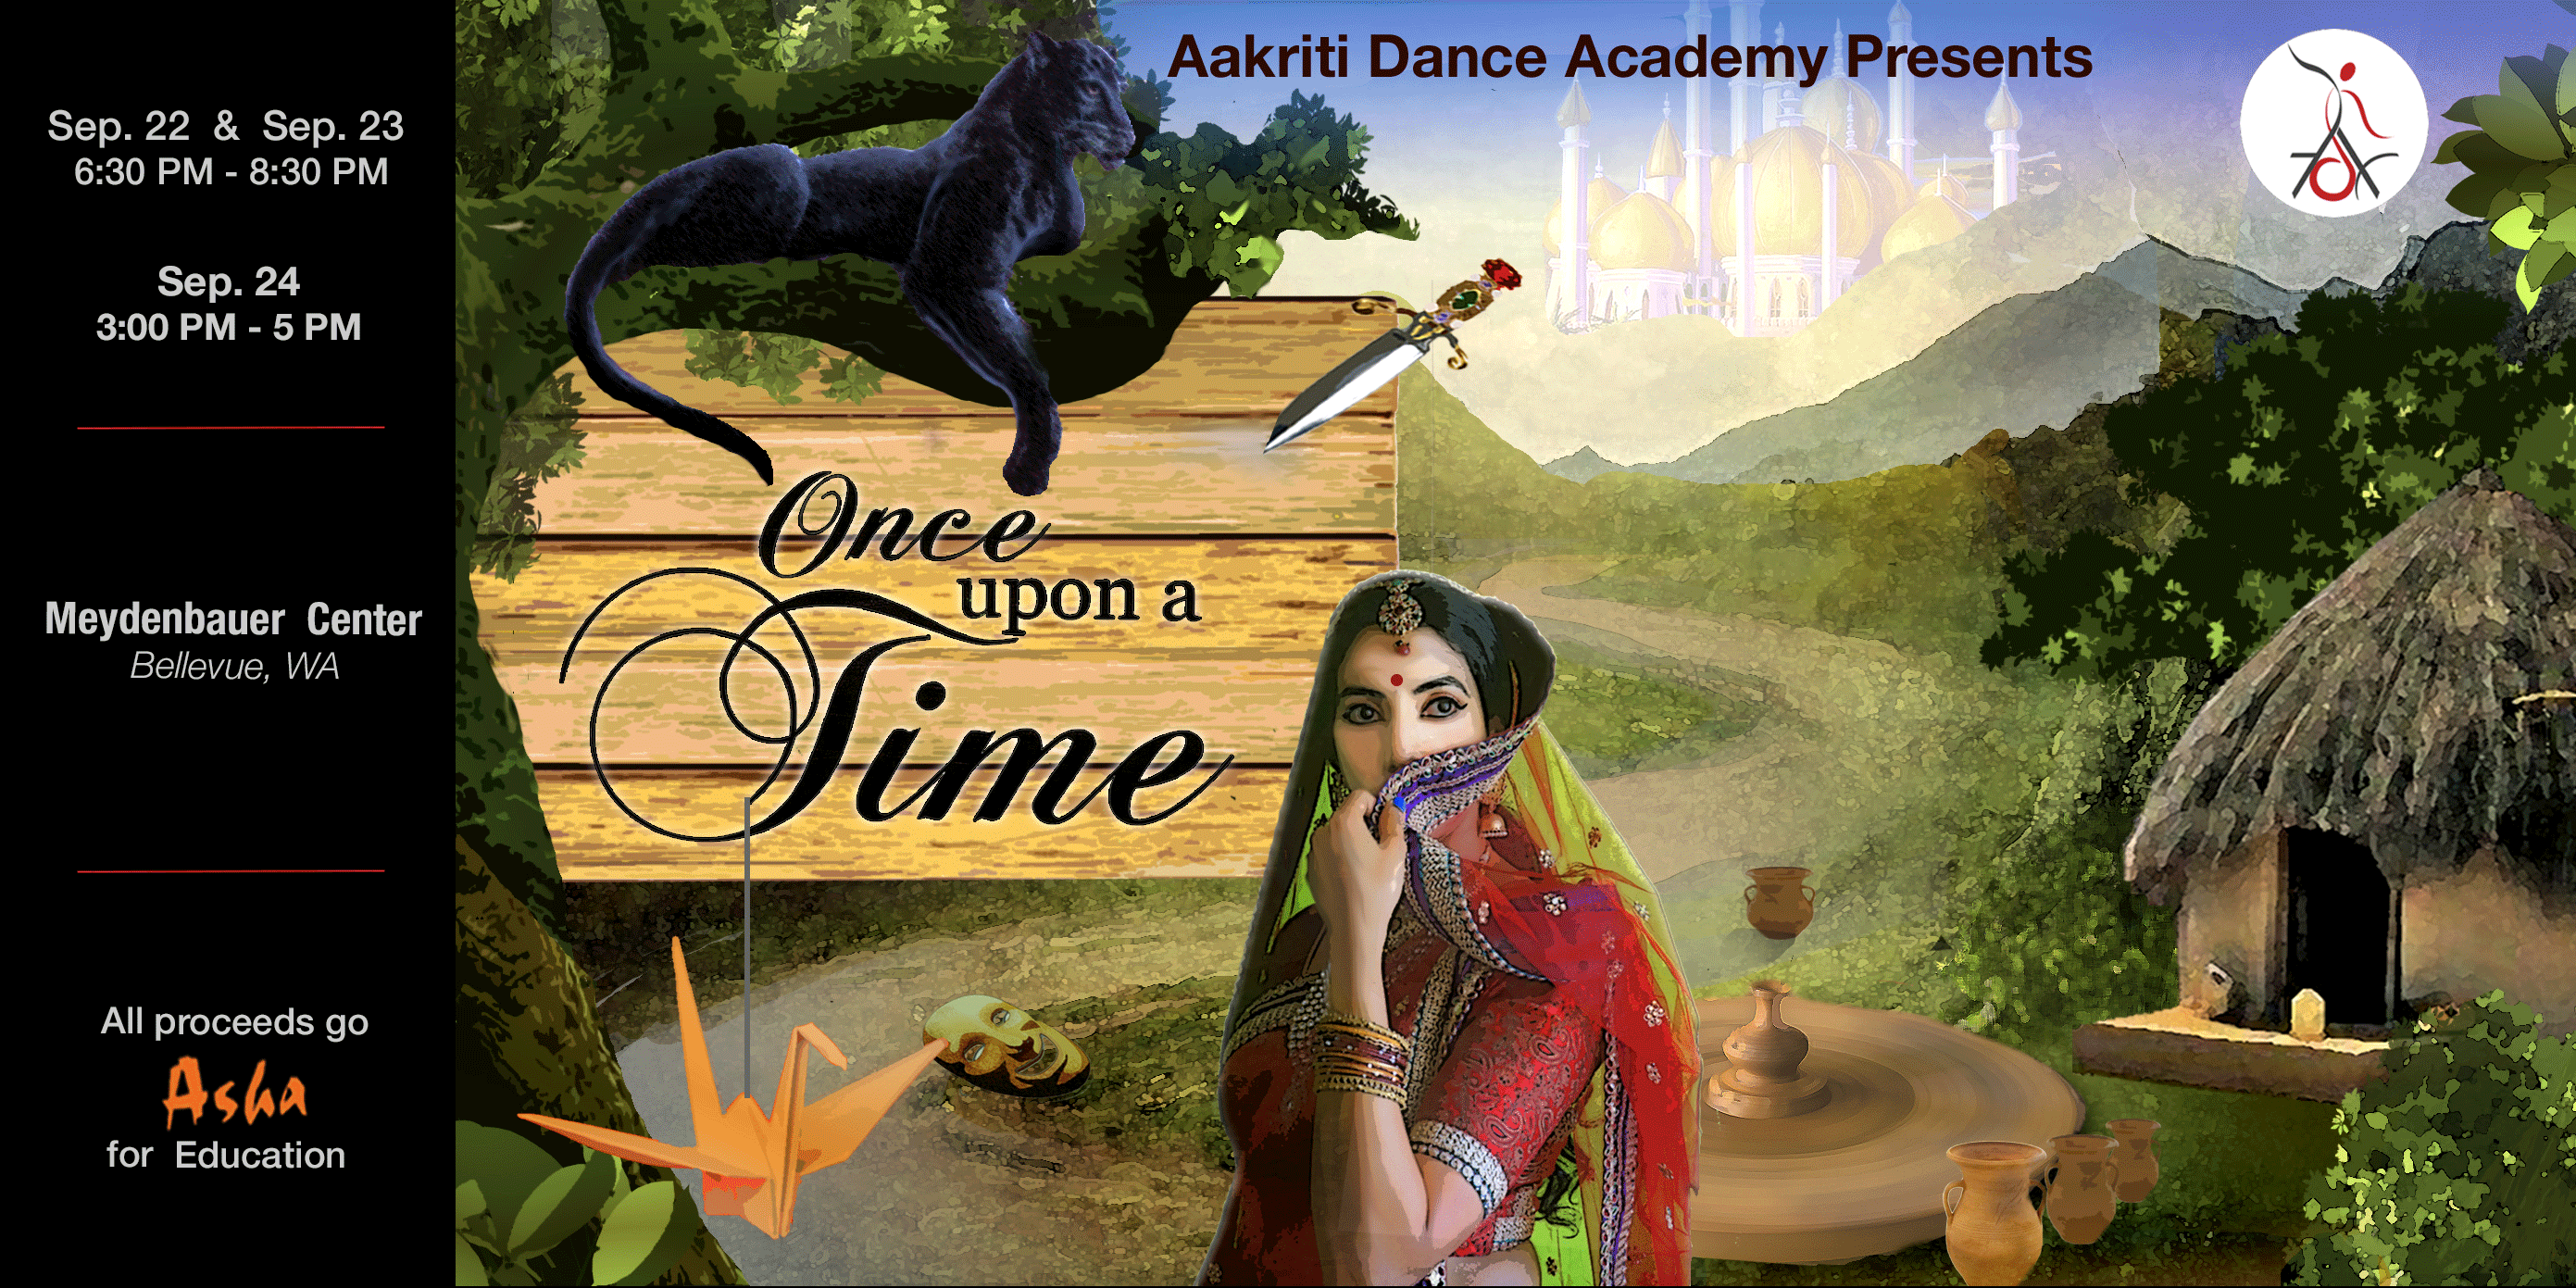 Once upon a Time by Aakriti 2017